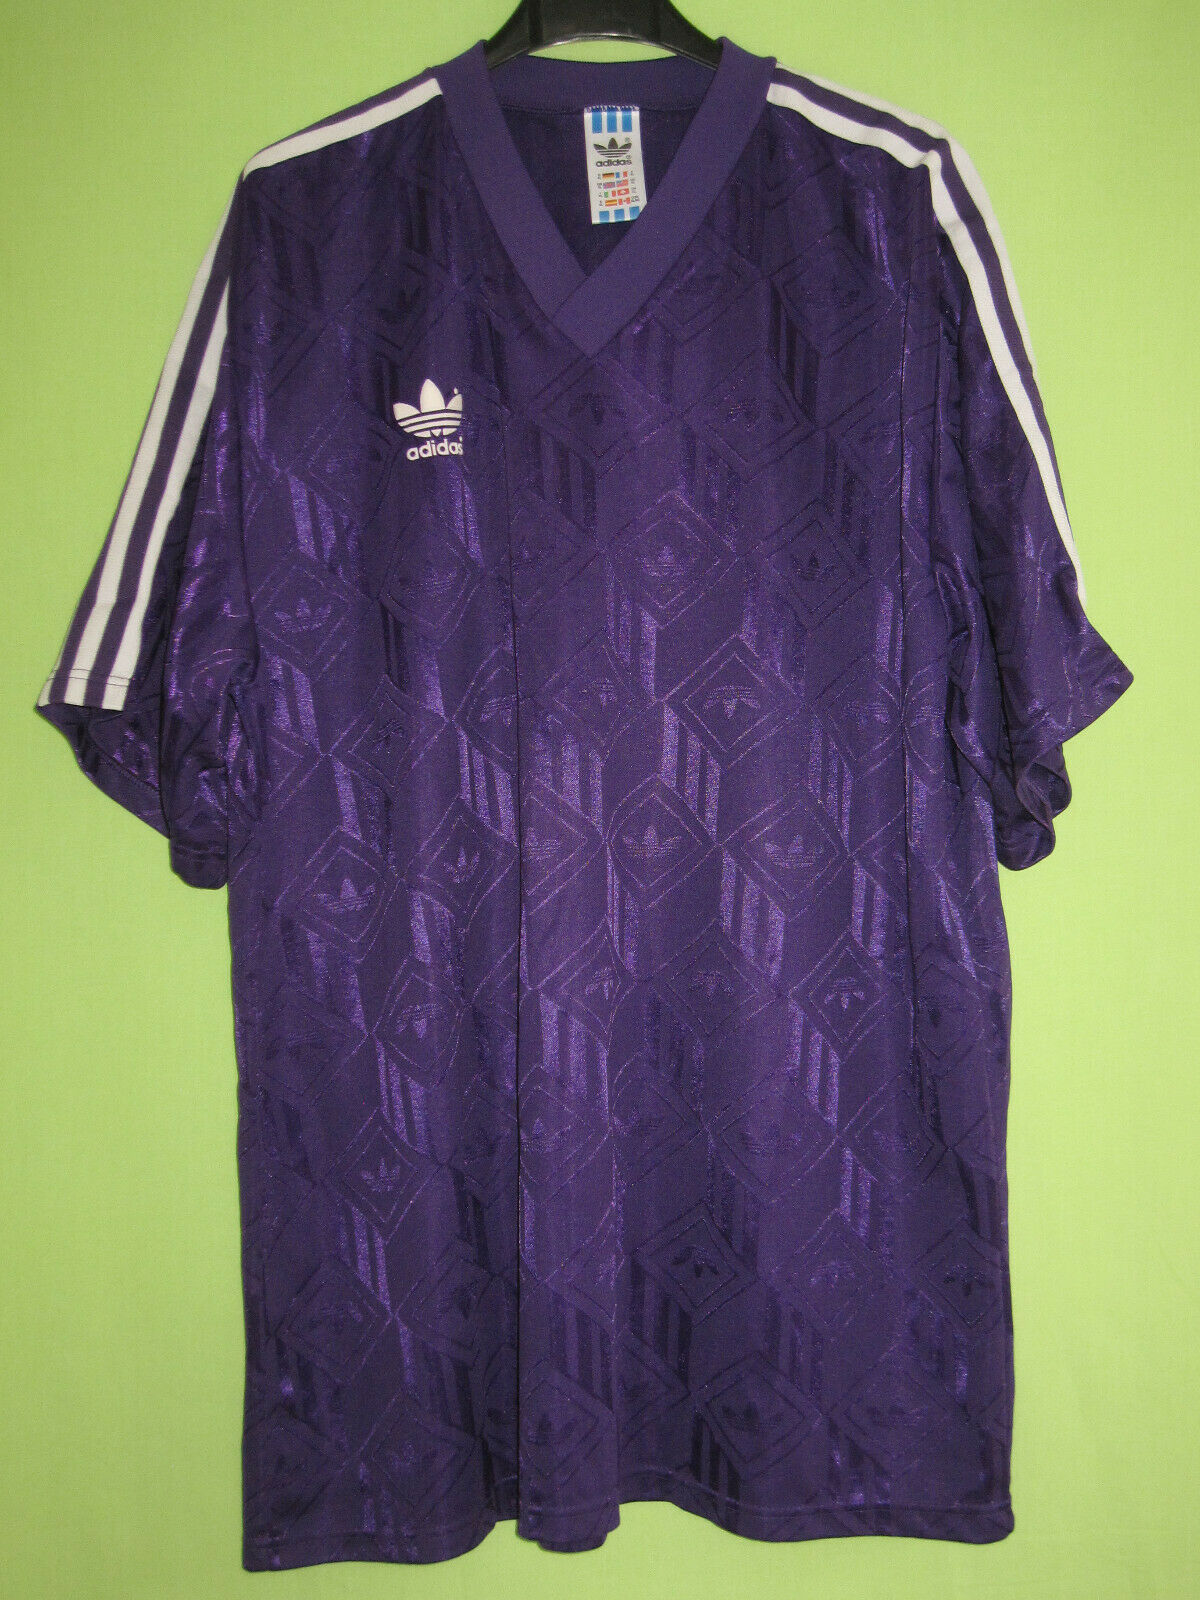 Maillot Adidas purple vintage 90'S Jersey Football Trefoil Toulouse - XL